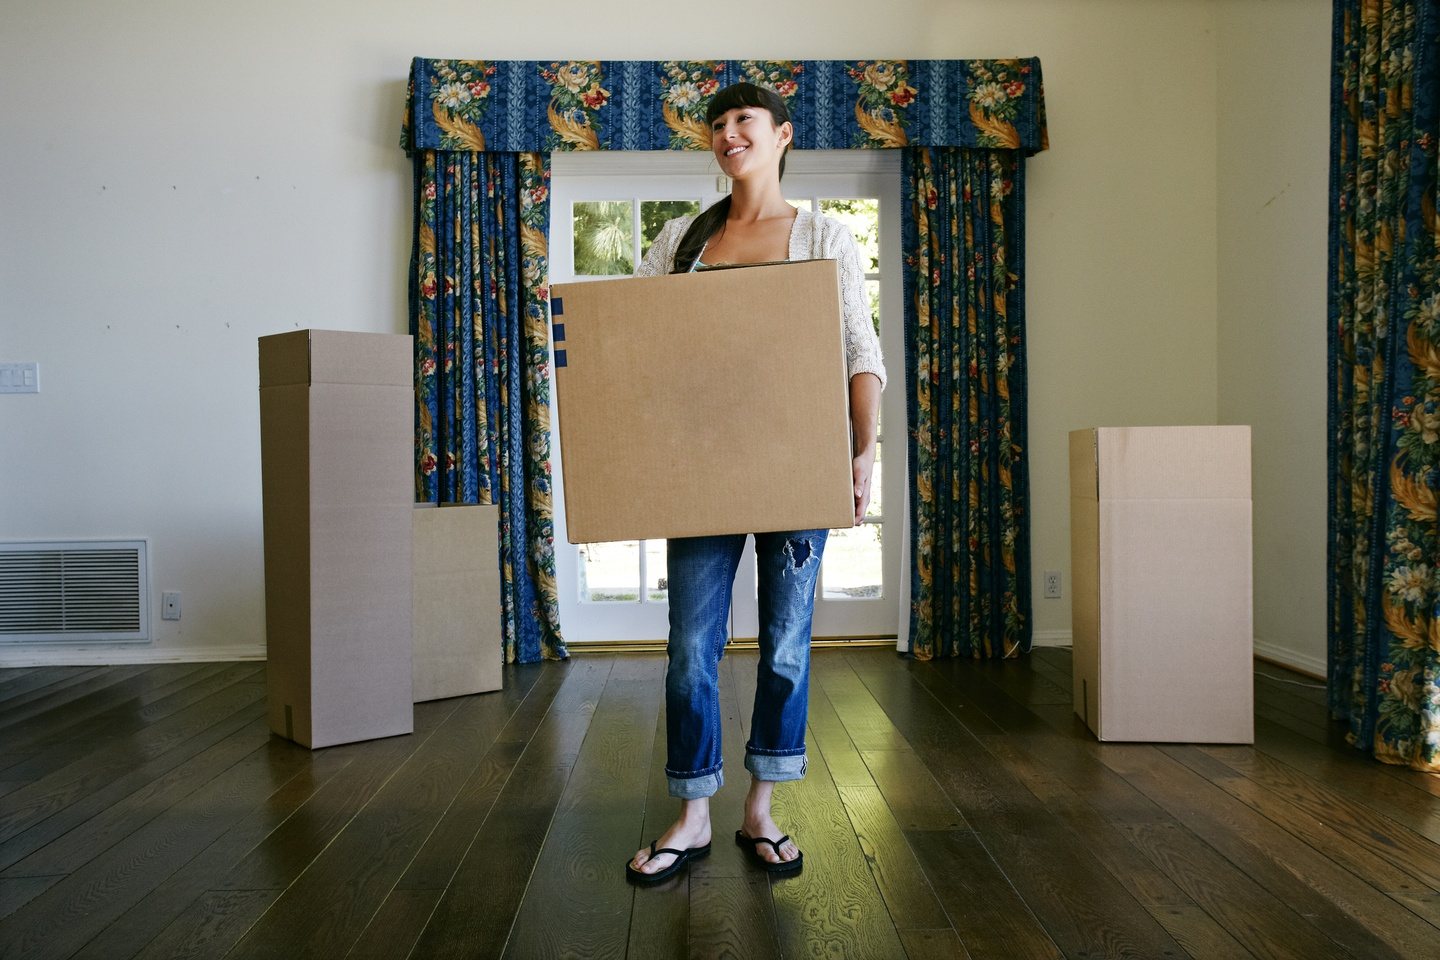 a woman holding a packing box and standing in an empty house getting ready to move in